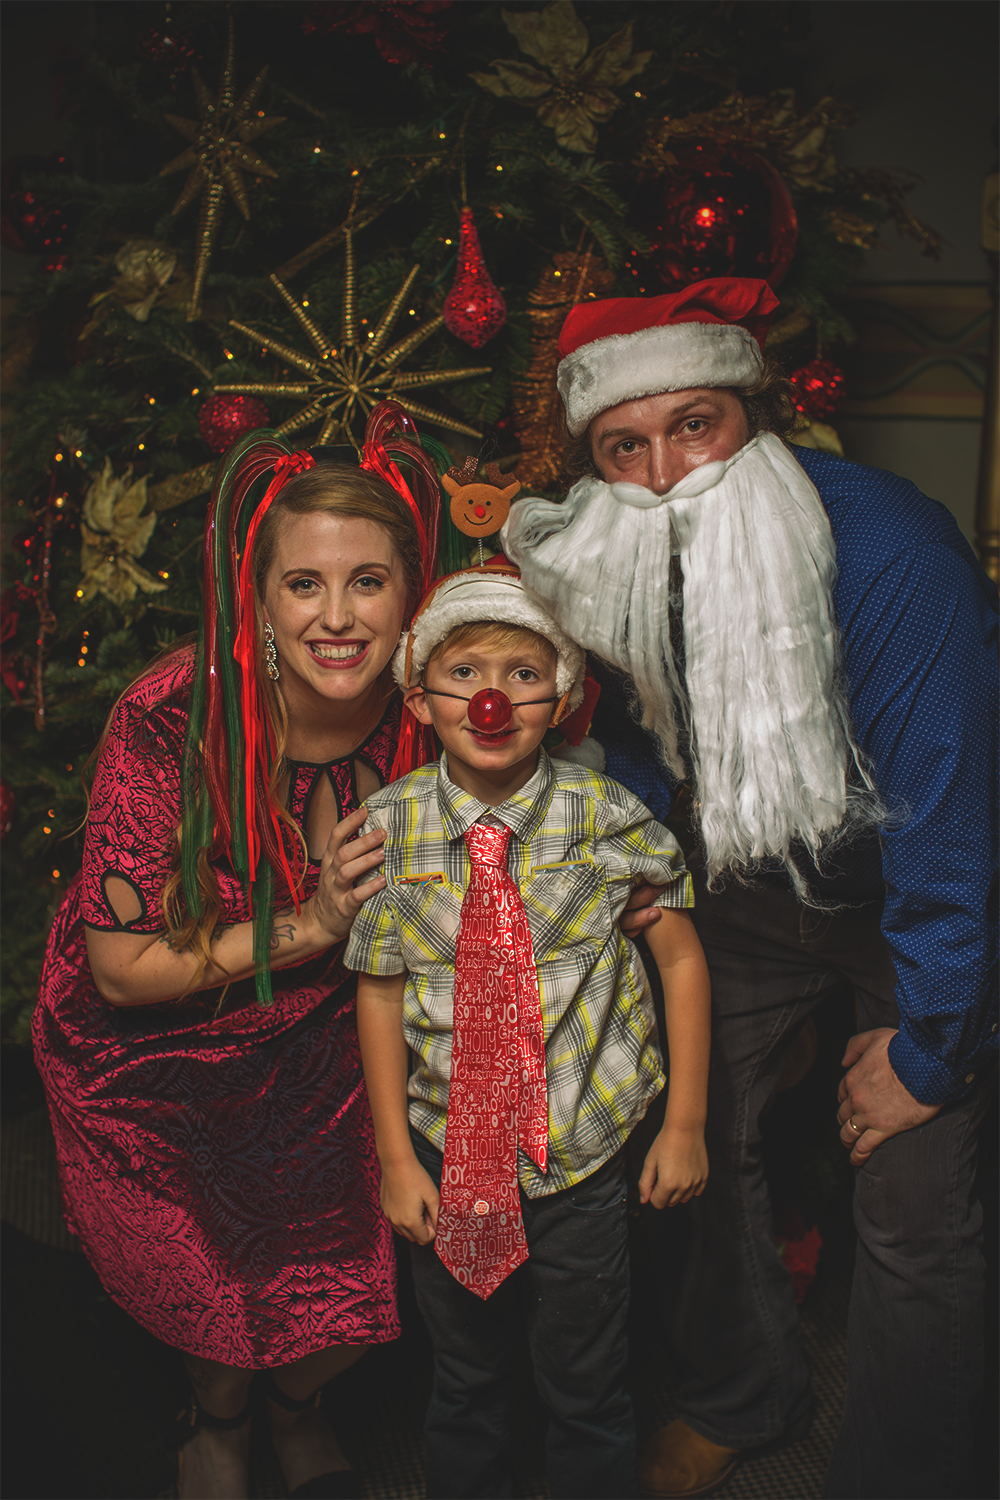 epproperties-vancouver-washington-xmas-party-photolga12.png